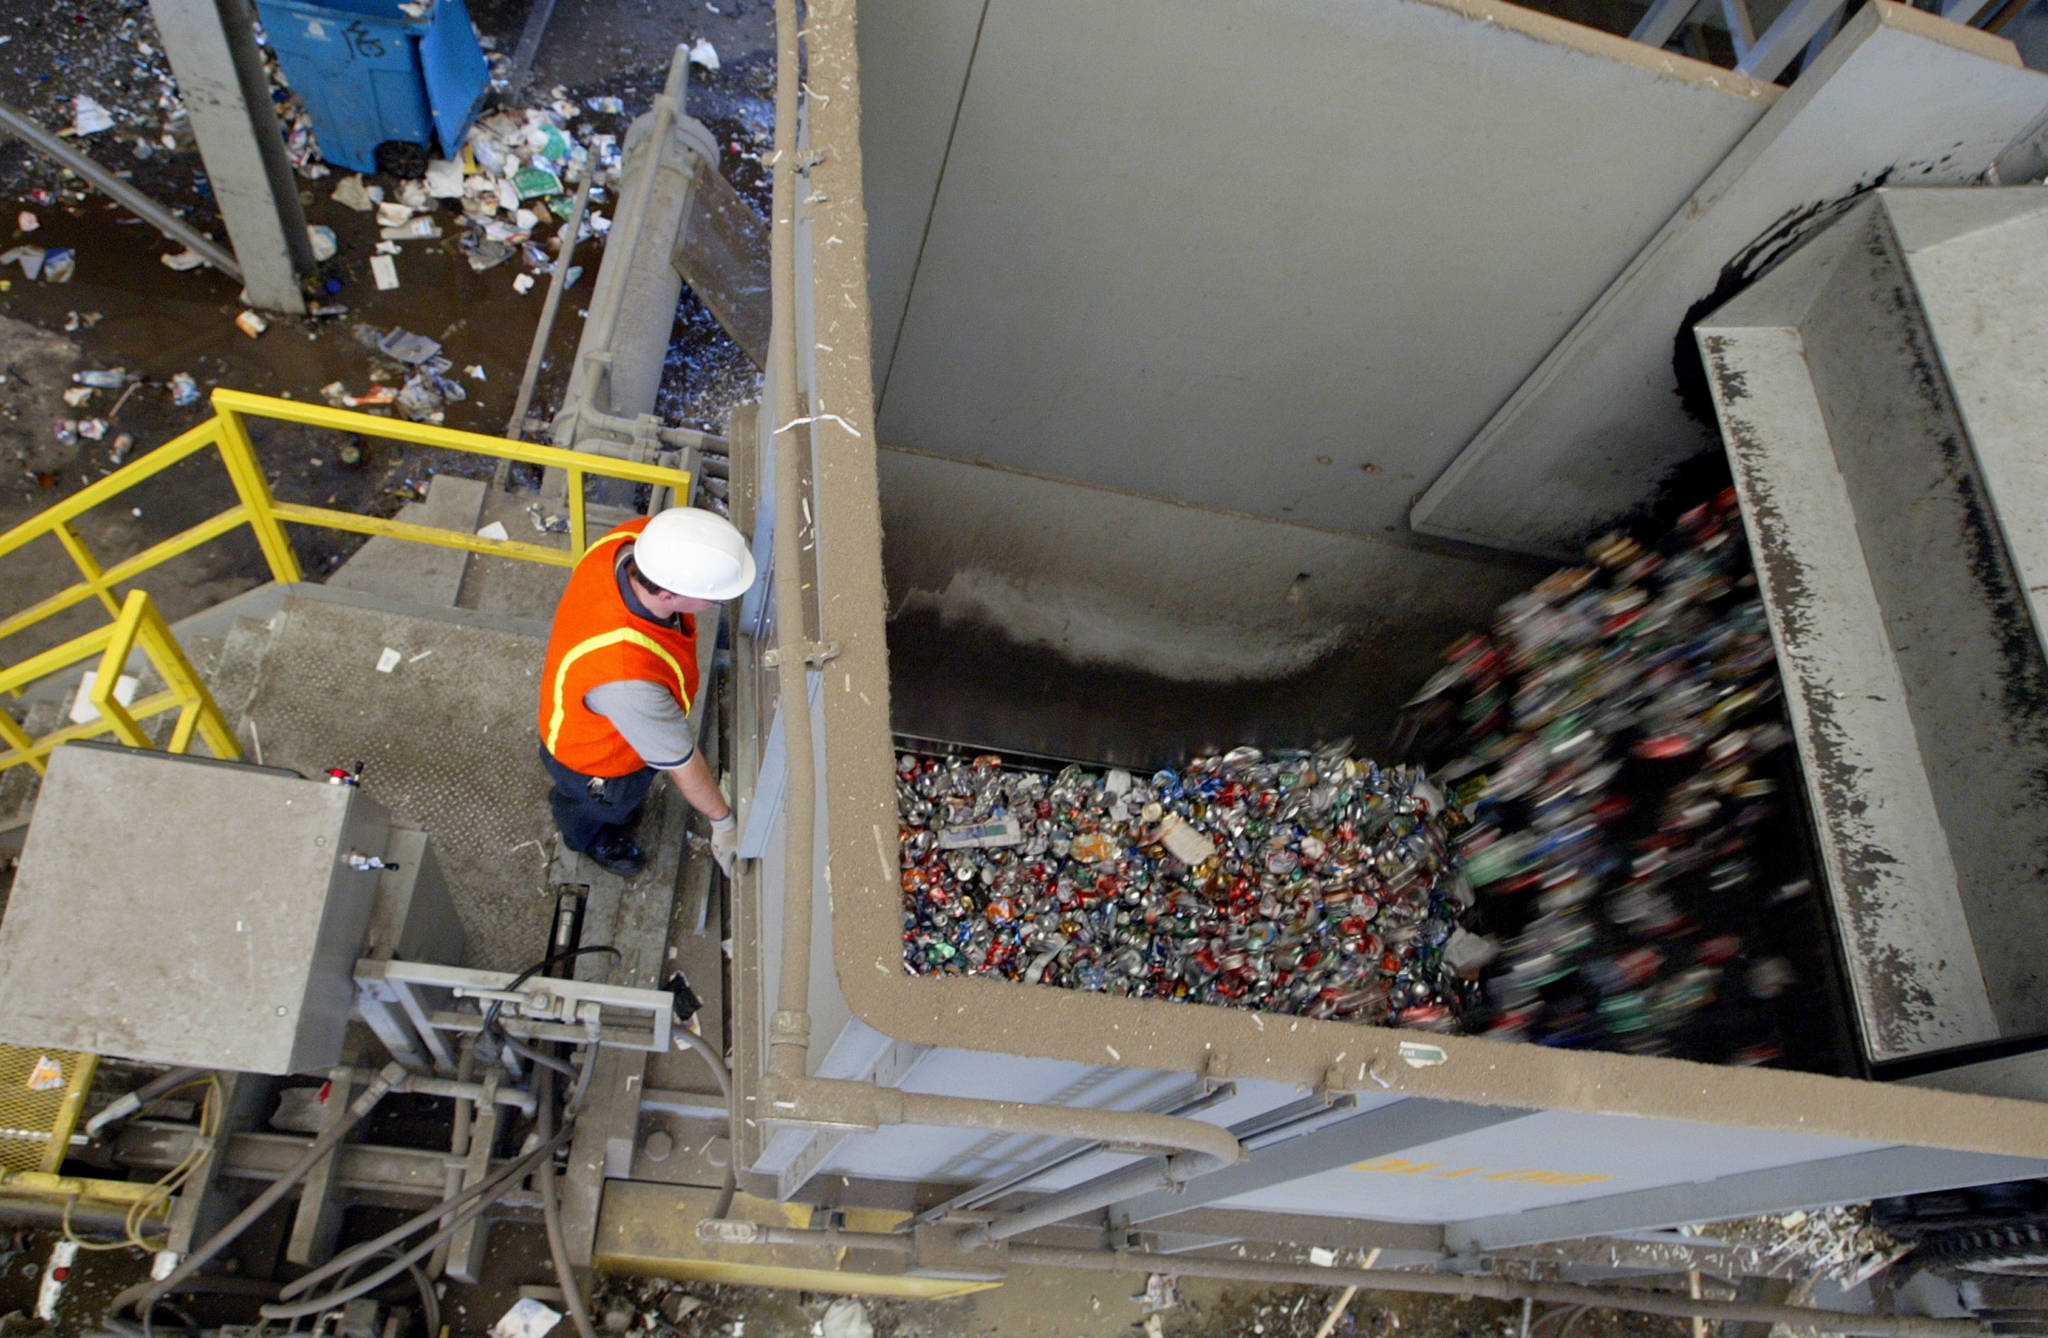 Legislature Passes Bill to Shore Up State's Recycling Centers